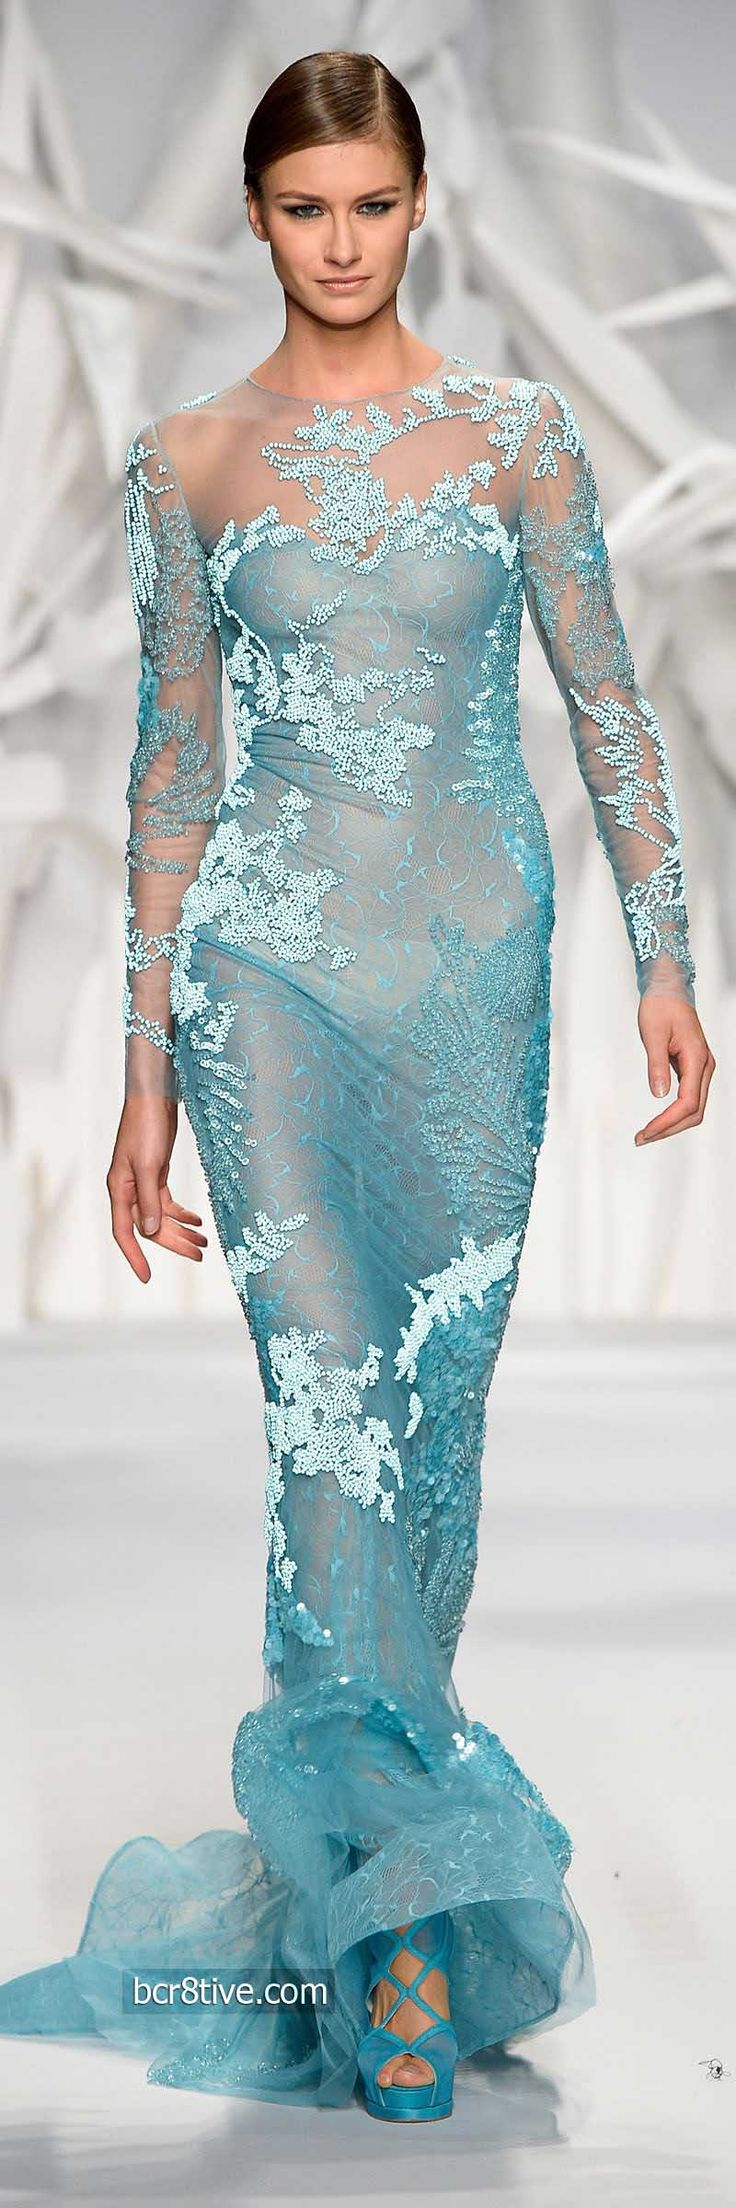 Abed Mahfouz Fall Winter 2014 Haute Couture  This is a beautiful dress and it would look even better if it were lined so that her breasts and underwear didn't show. Why would anyone want to wear a dress like this?